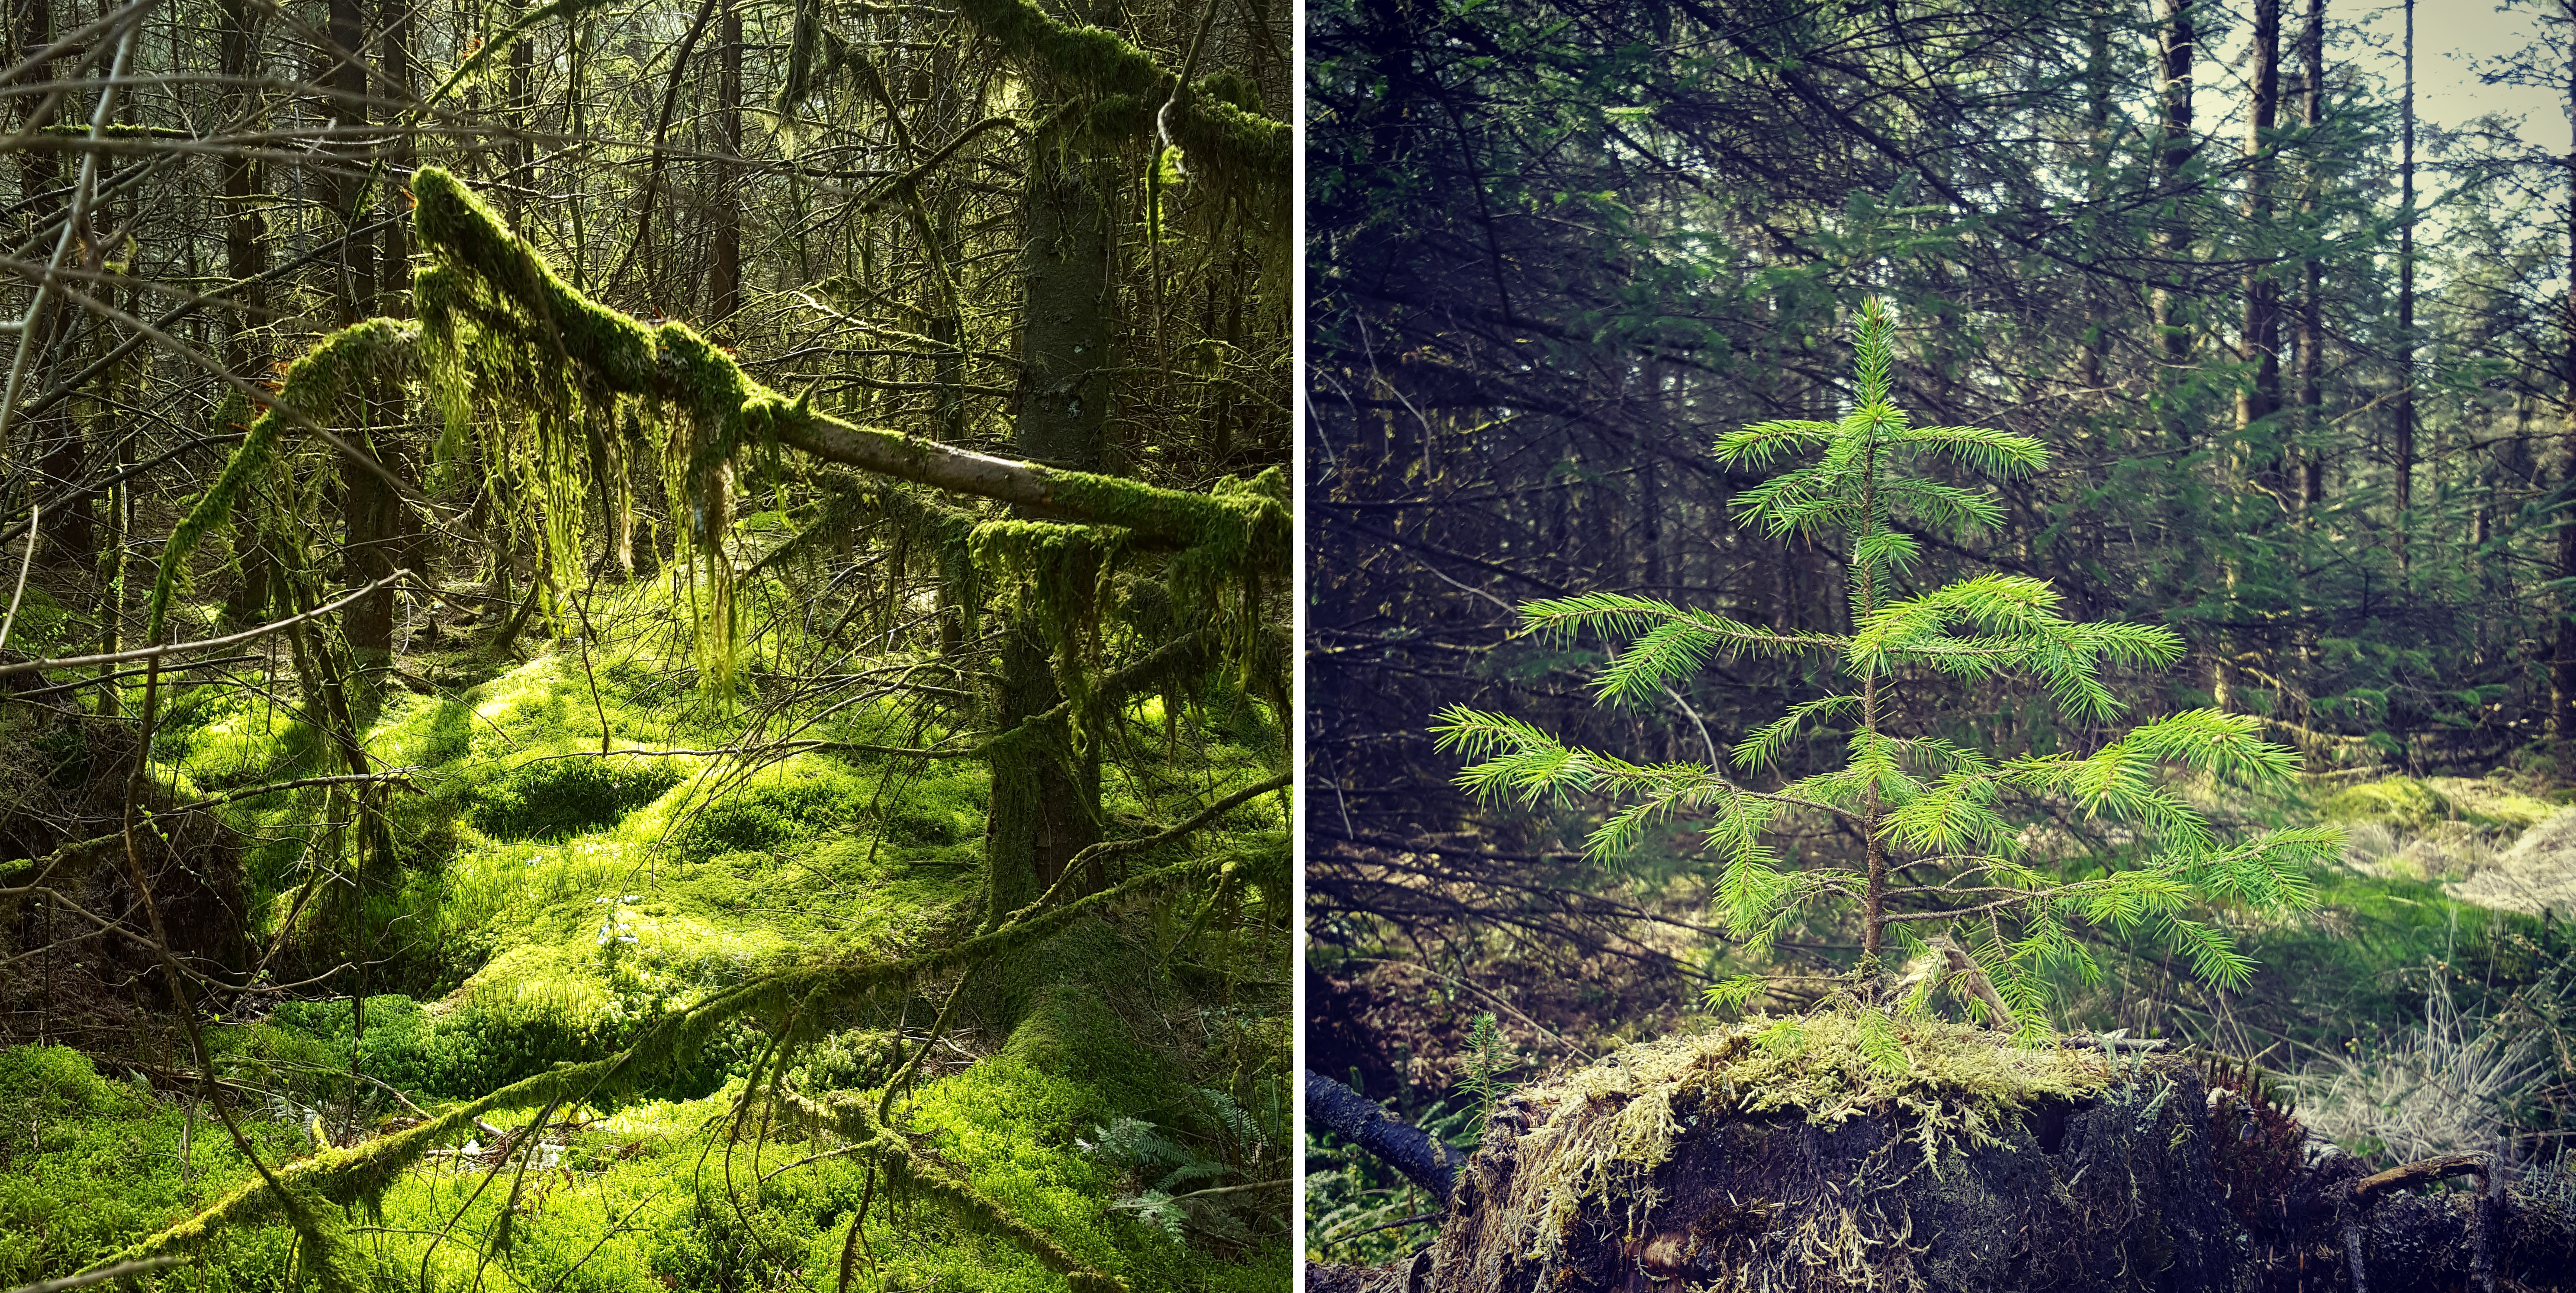 Images of April Brechfa Forest trees